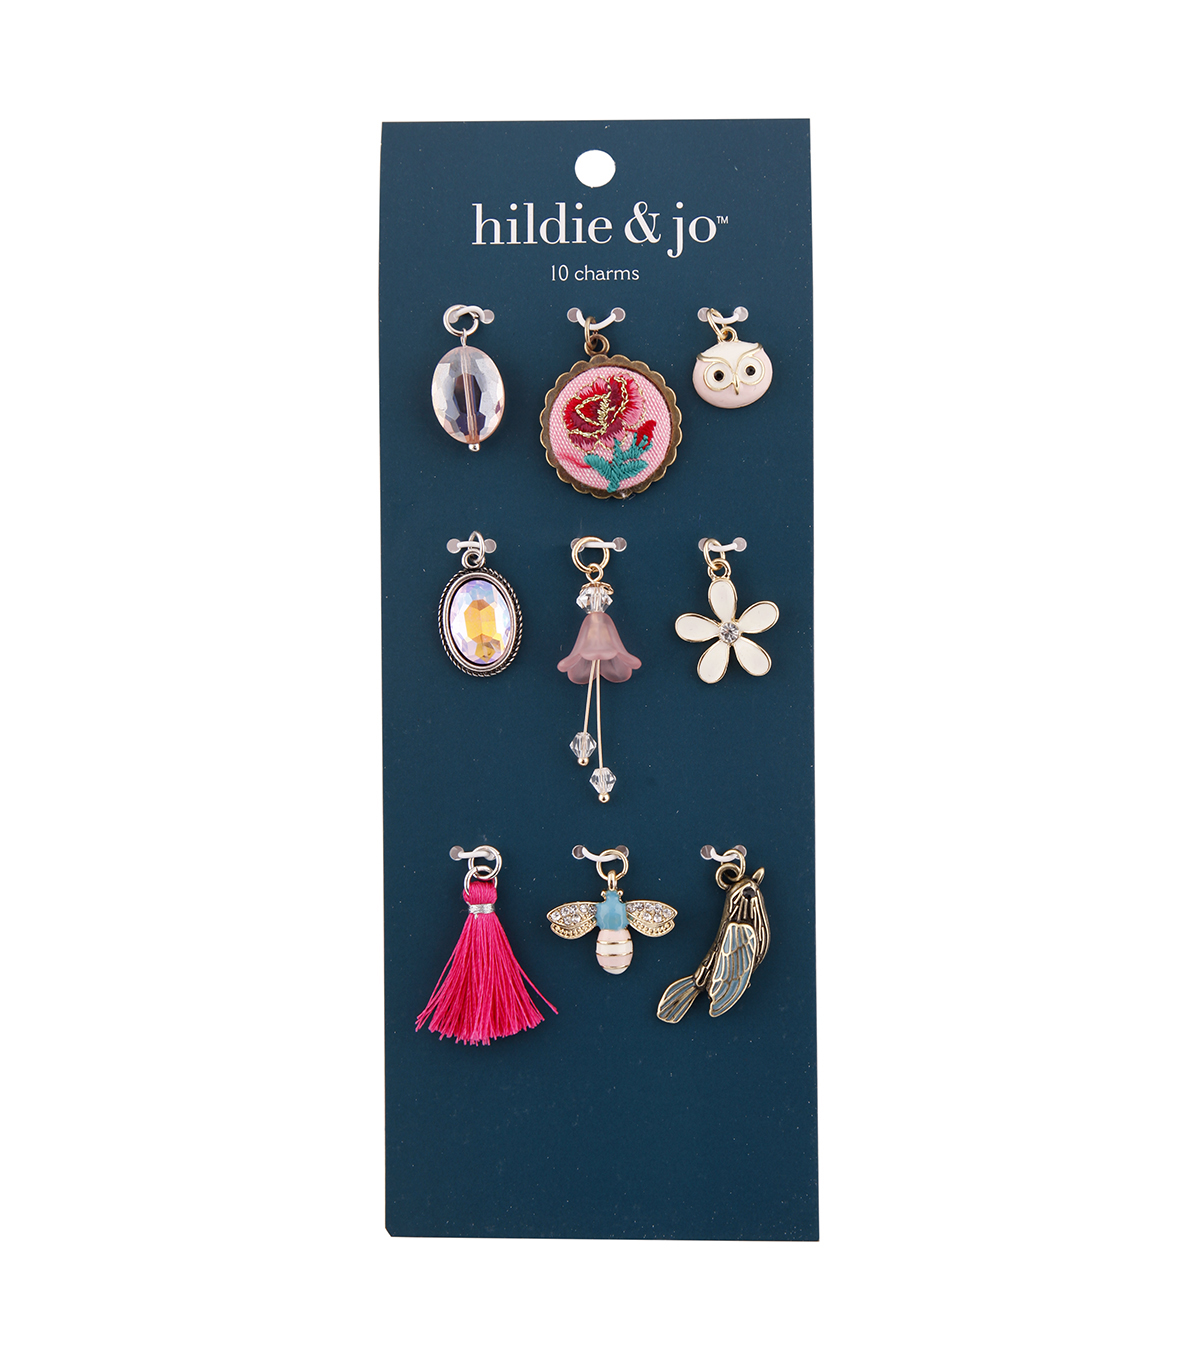 hildie & jo Zinc Alloy & Iron Nature Charm Pack-Pink